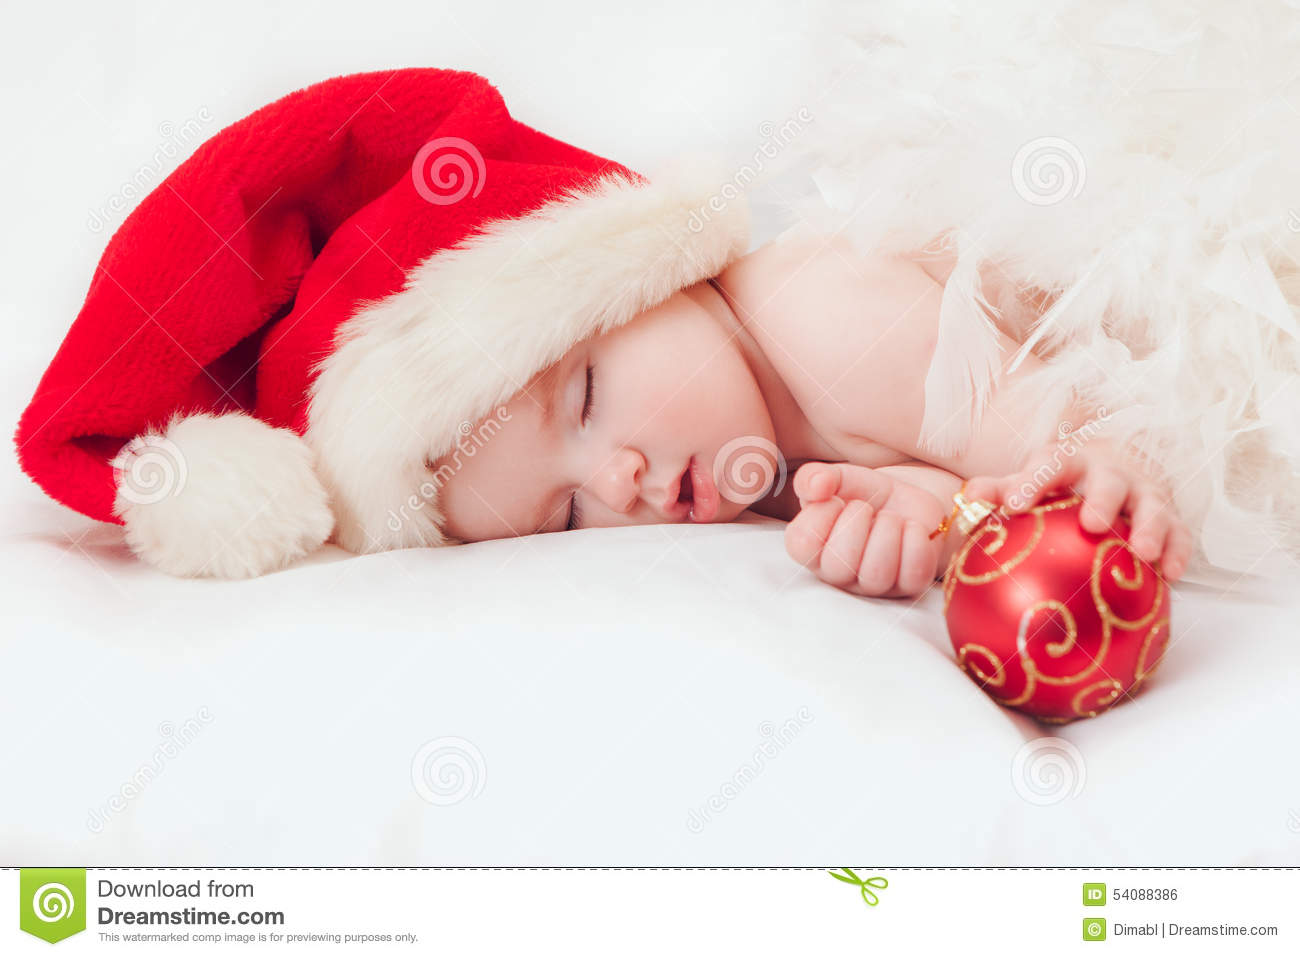 Sleeping baby Santa Claus red hat and holding Christmas tree decoration fbbec964c73